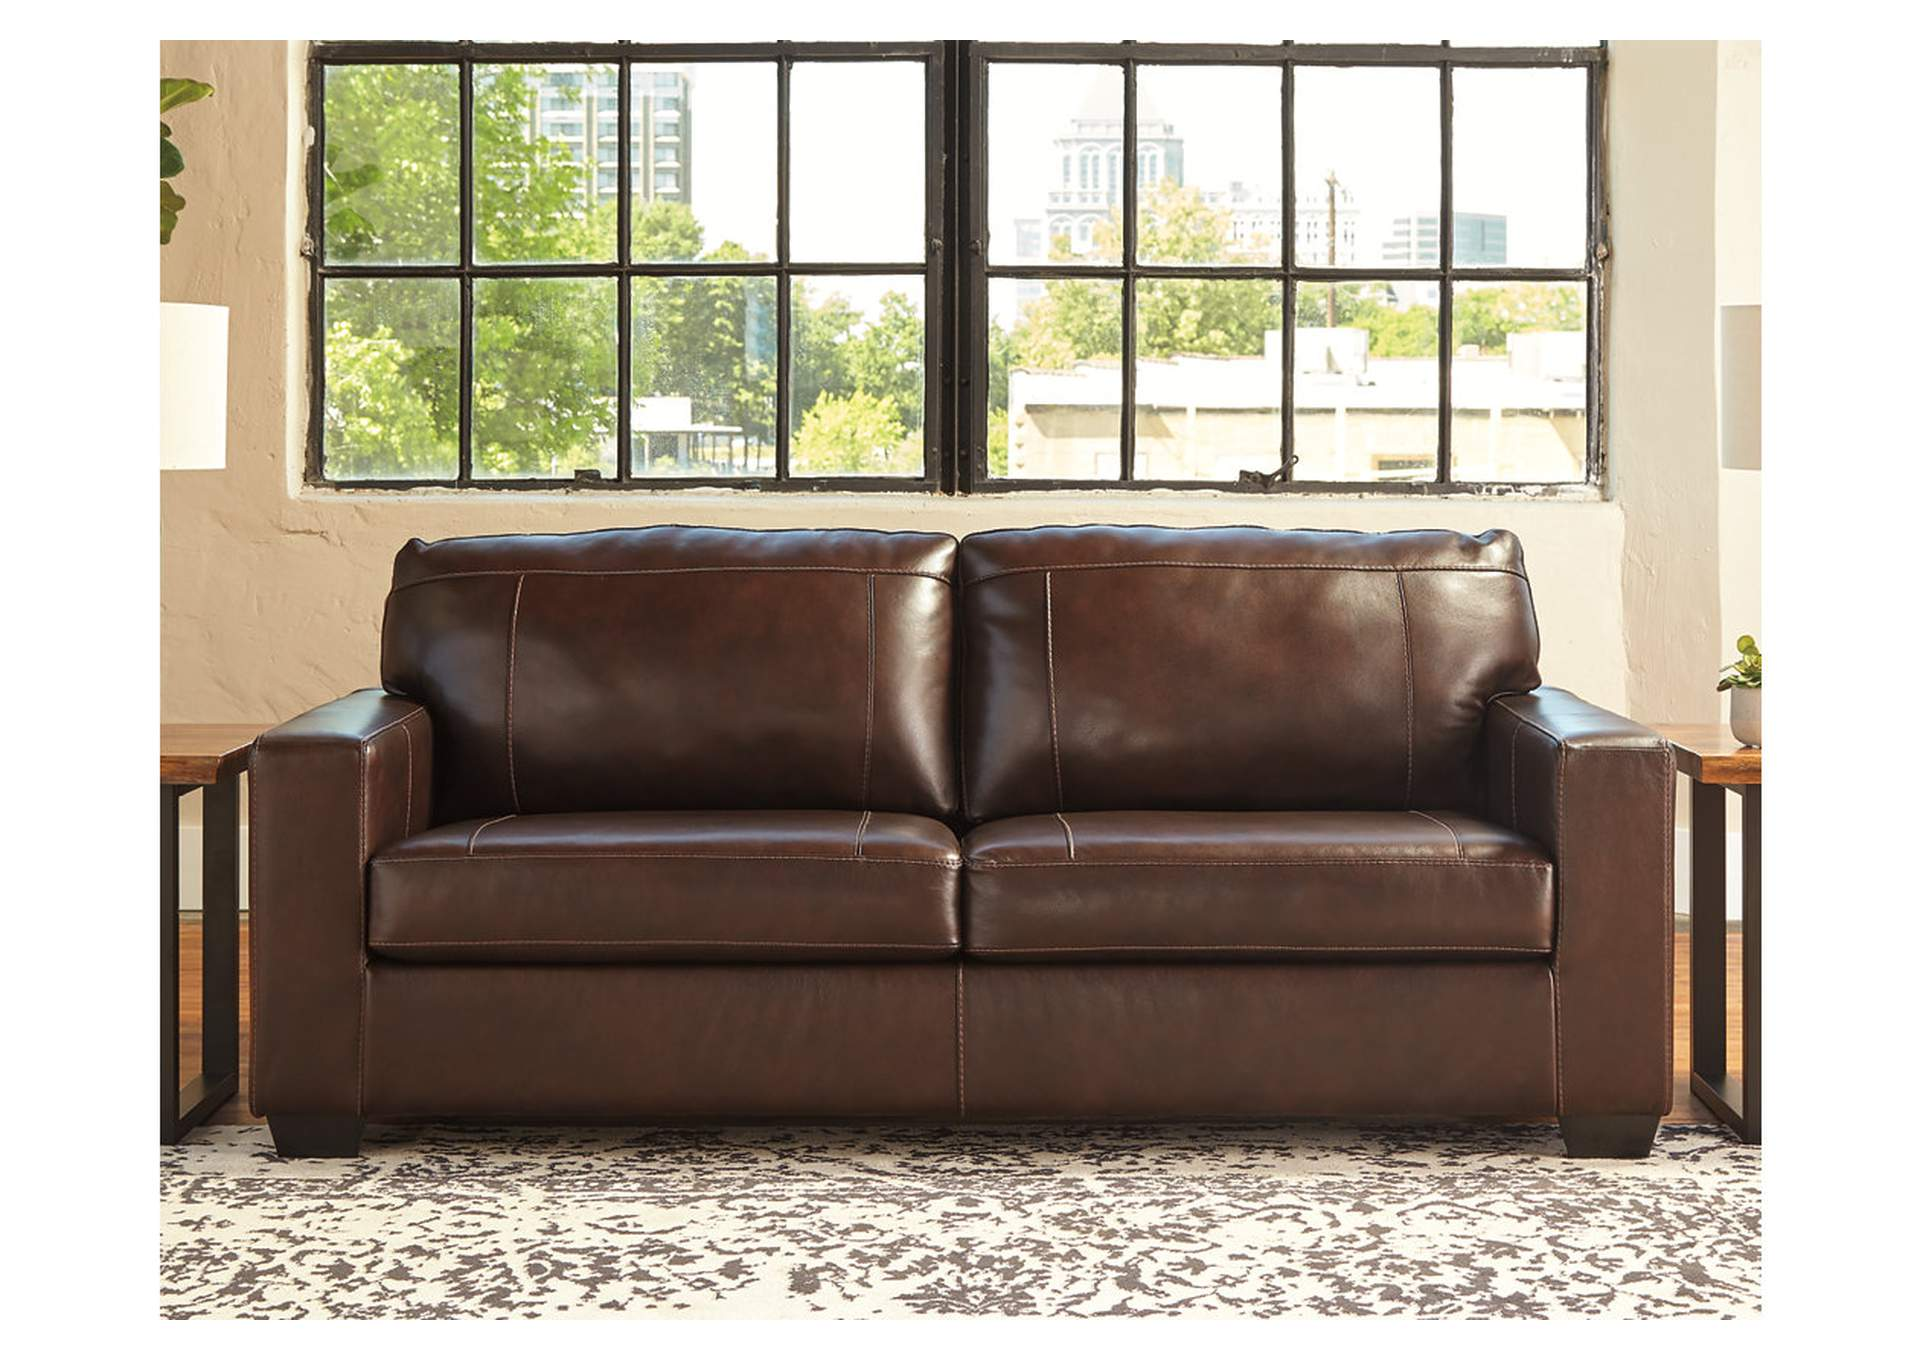 Morelos Chocolate Sofa,Signature Design By Ashley